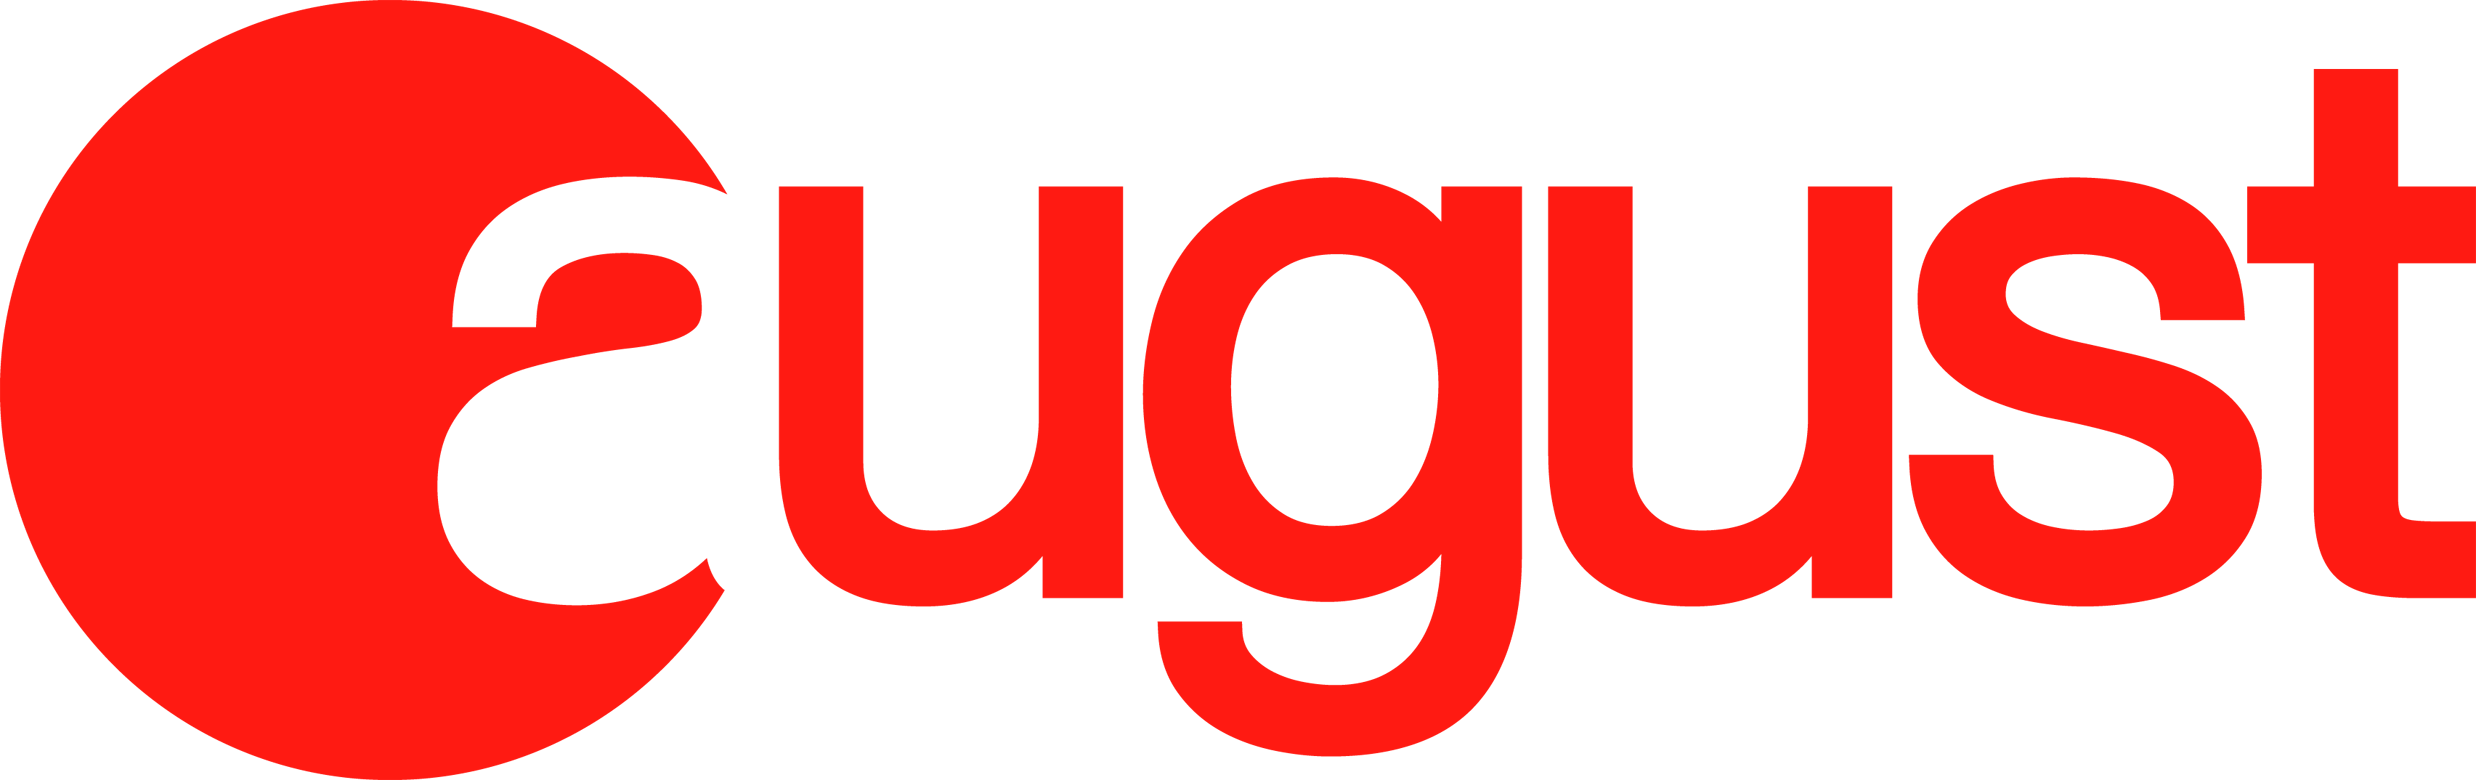 AugustLogoLarge.png